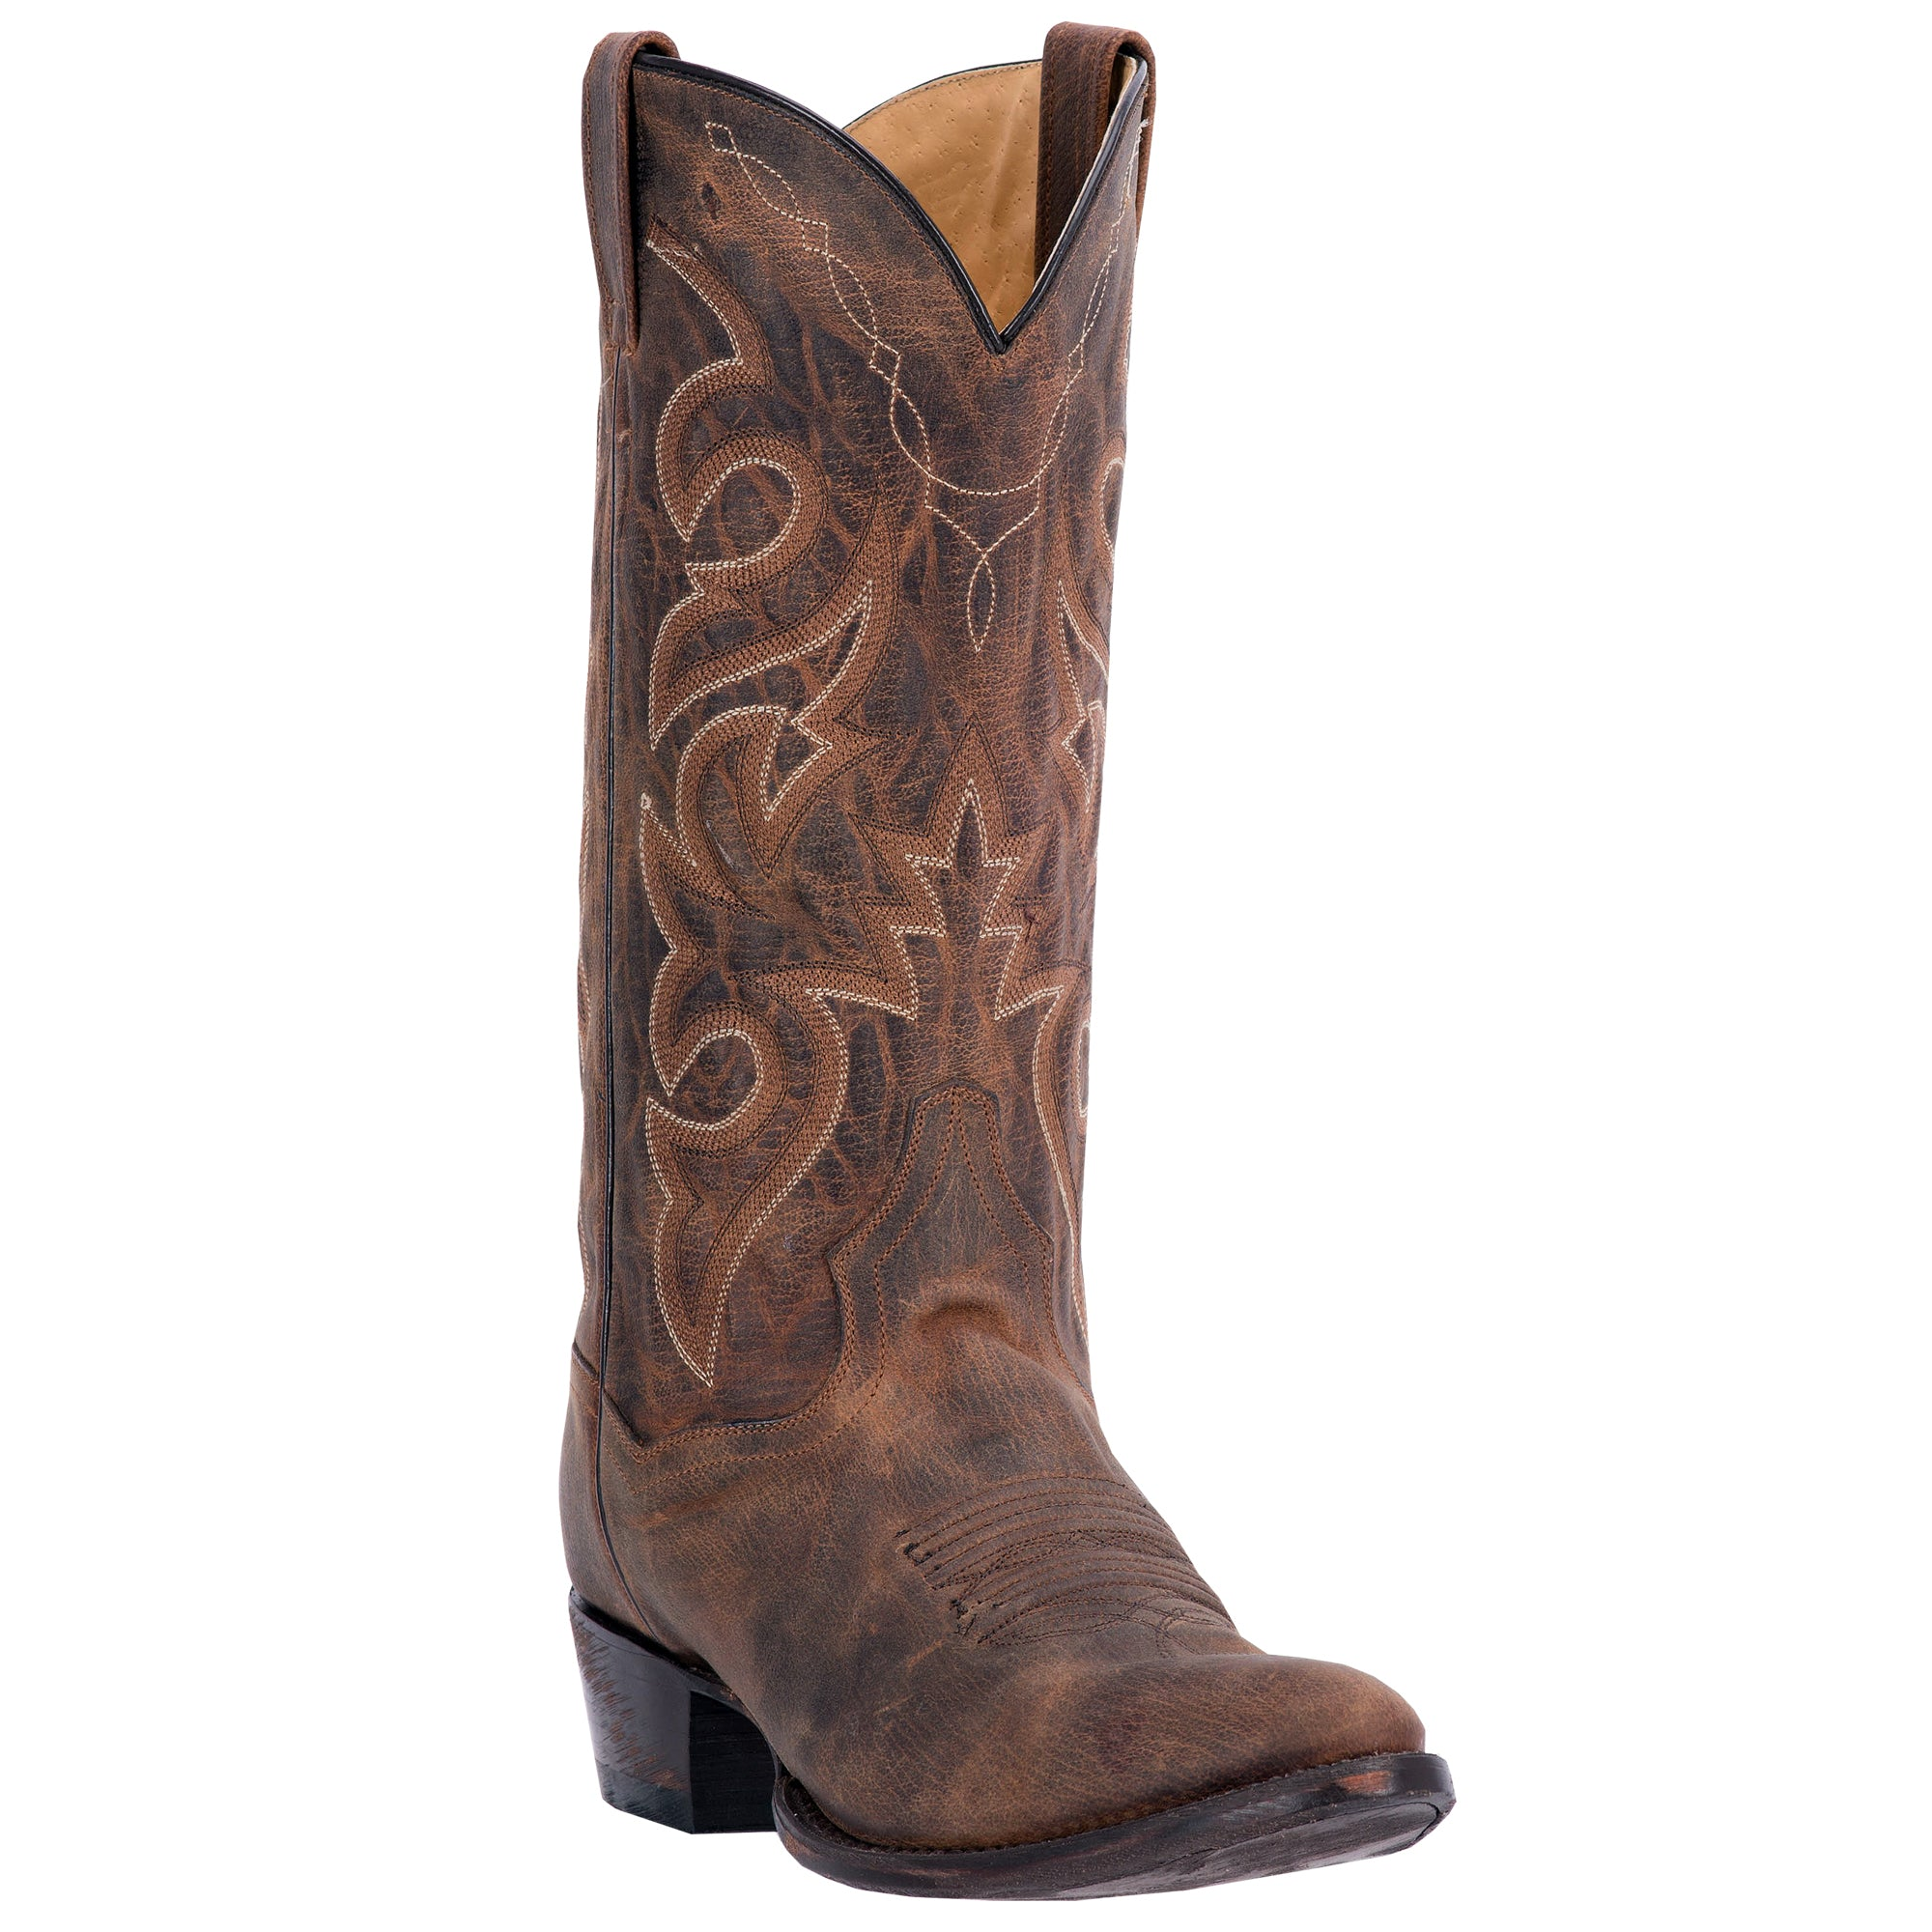 RENEGADE LEATHER BOOT 4197129289770